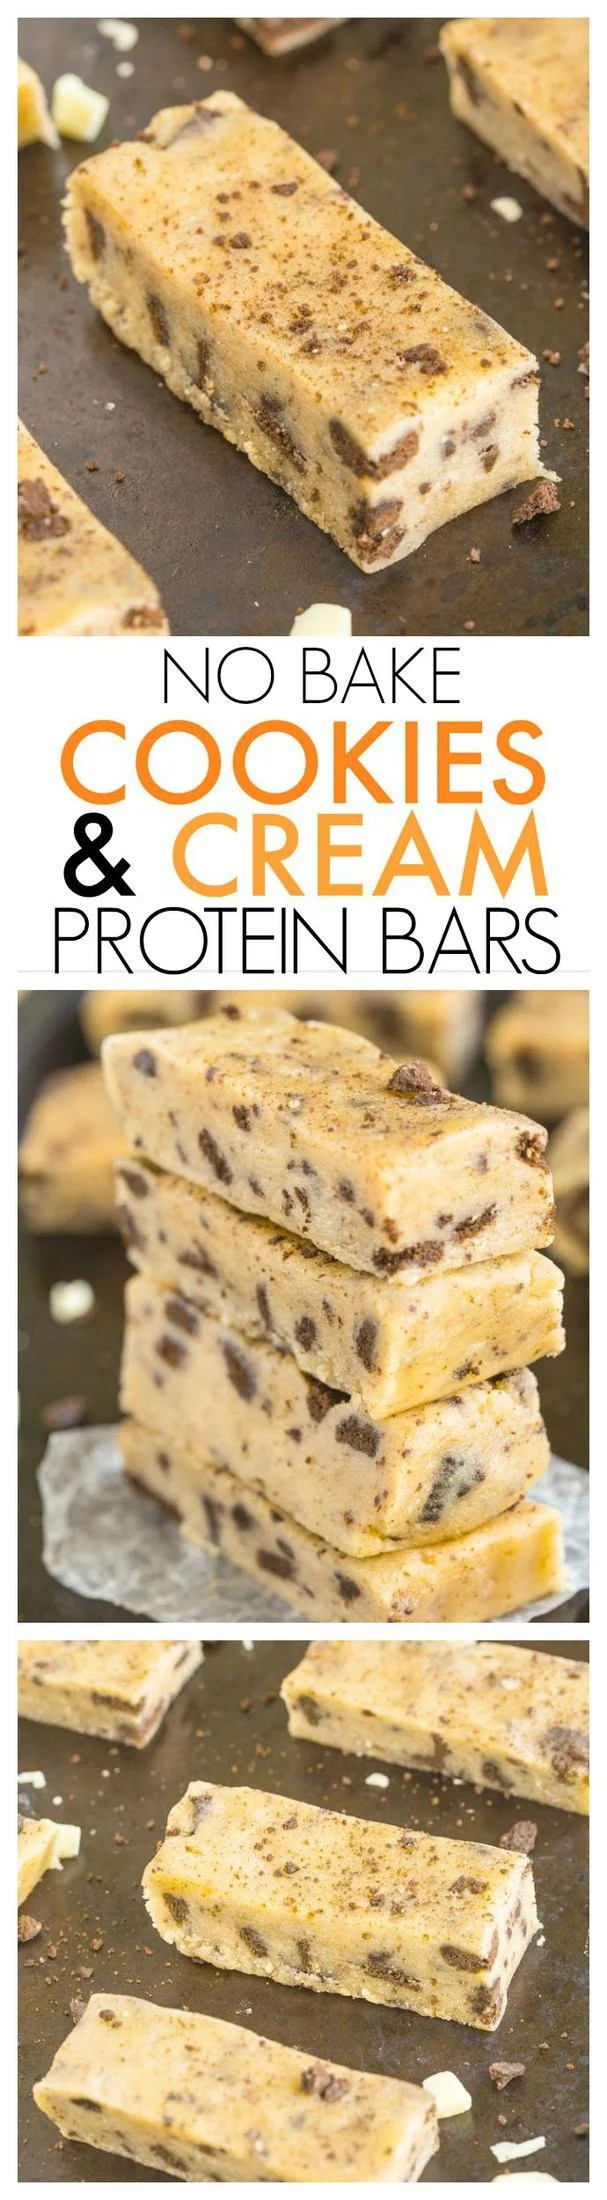 Healthy No Bake Cookies and Cream Protein Snack Bars- Just 10 minutes and 1 bowl to whip these up- Soft, chewy and no refrigeration needed- They taste like candy! {vegan, gluten free, refined sugar free + paleo option!}